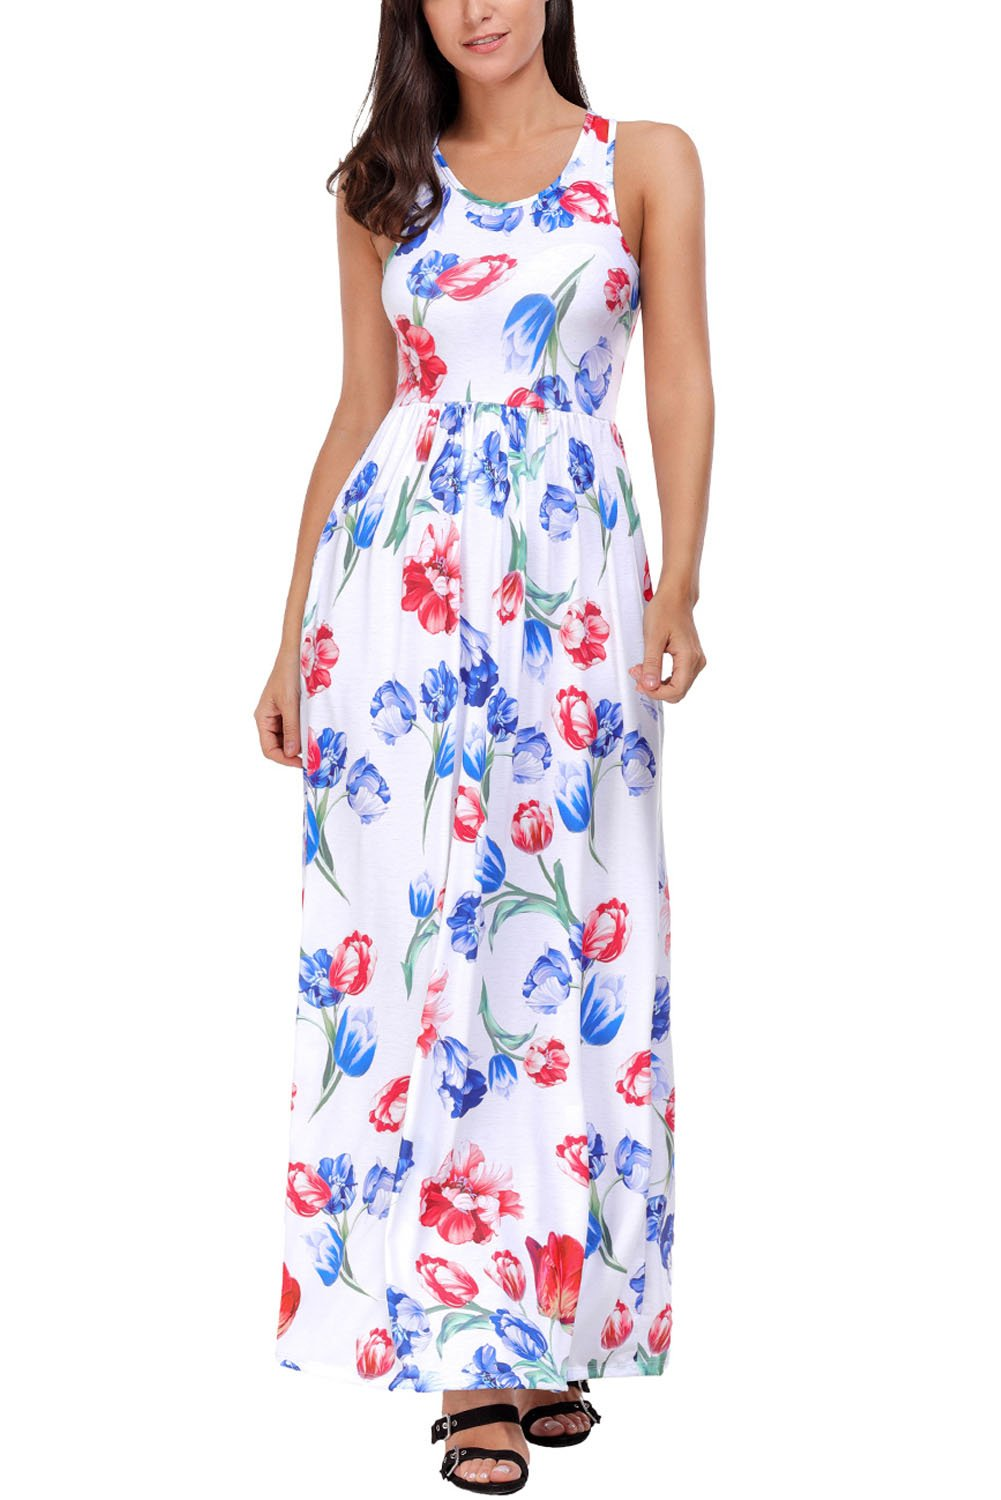 Women's Floral Print Summer Party Dresses Plus Size Sleeveless Long Maxi Casual Dress (US8-10/Medium, Color 4)